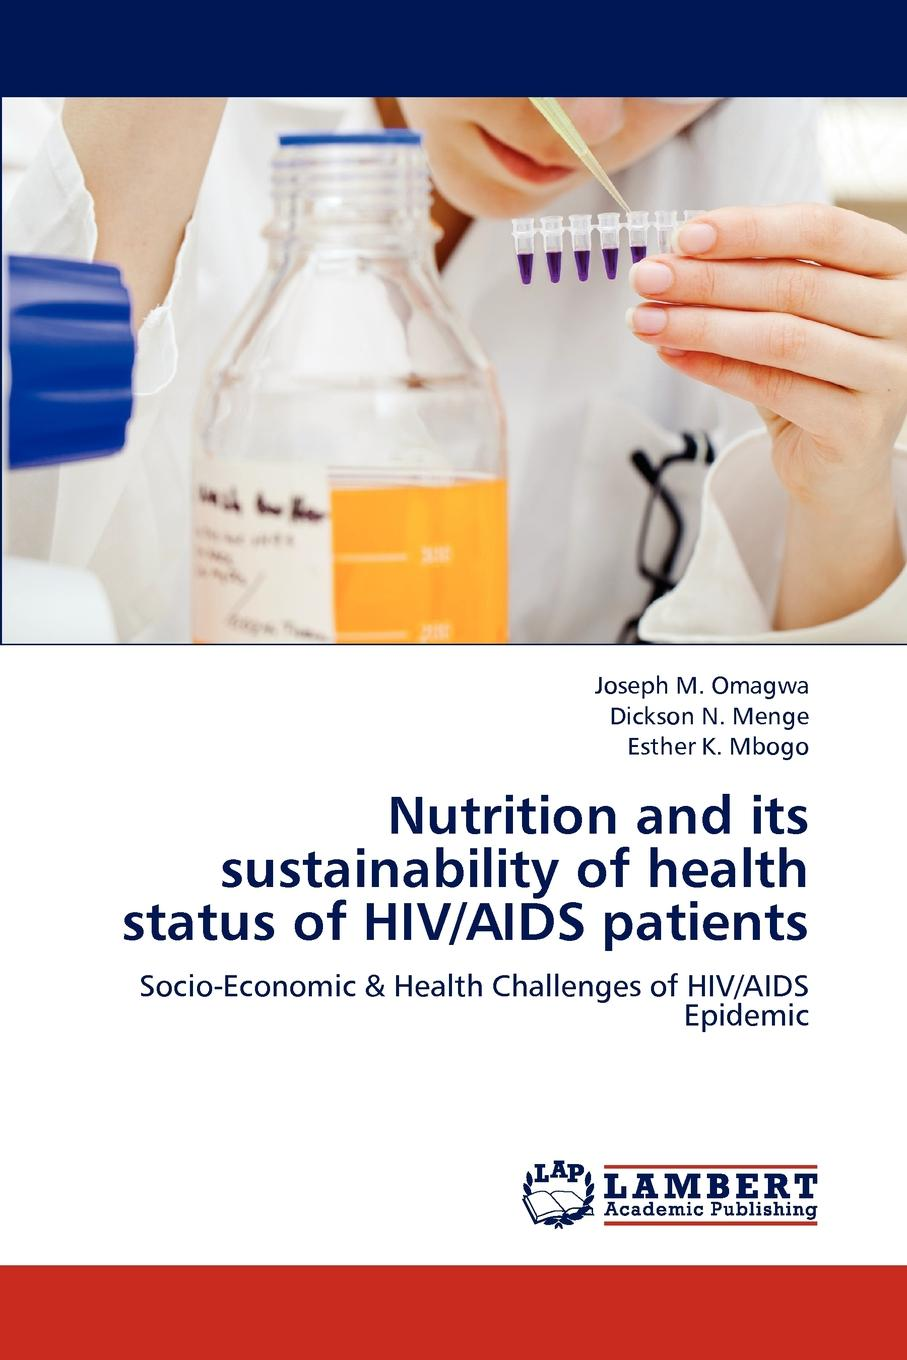 Joseph M. Omagwa, Dickson N. Menge, Esther K. Mbogo Nutrition and Its Sustainability of Health Status of HIV/AIDS Patients недорго, оригинальная цена